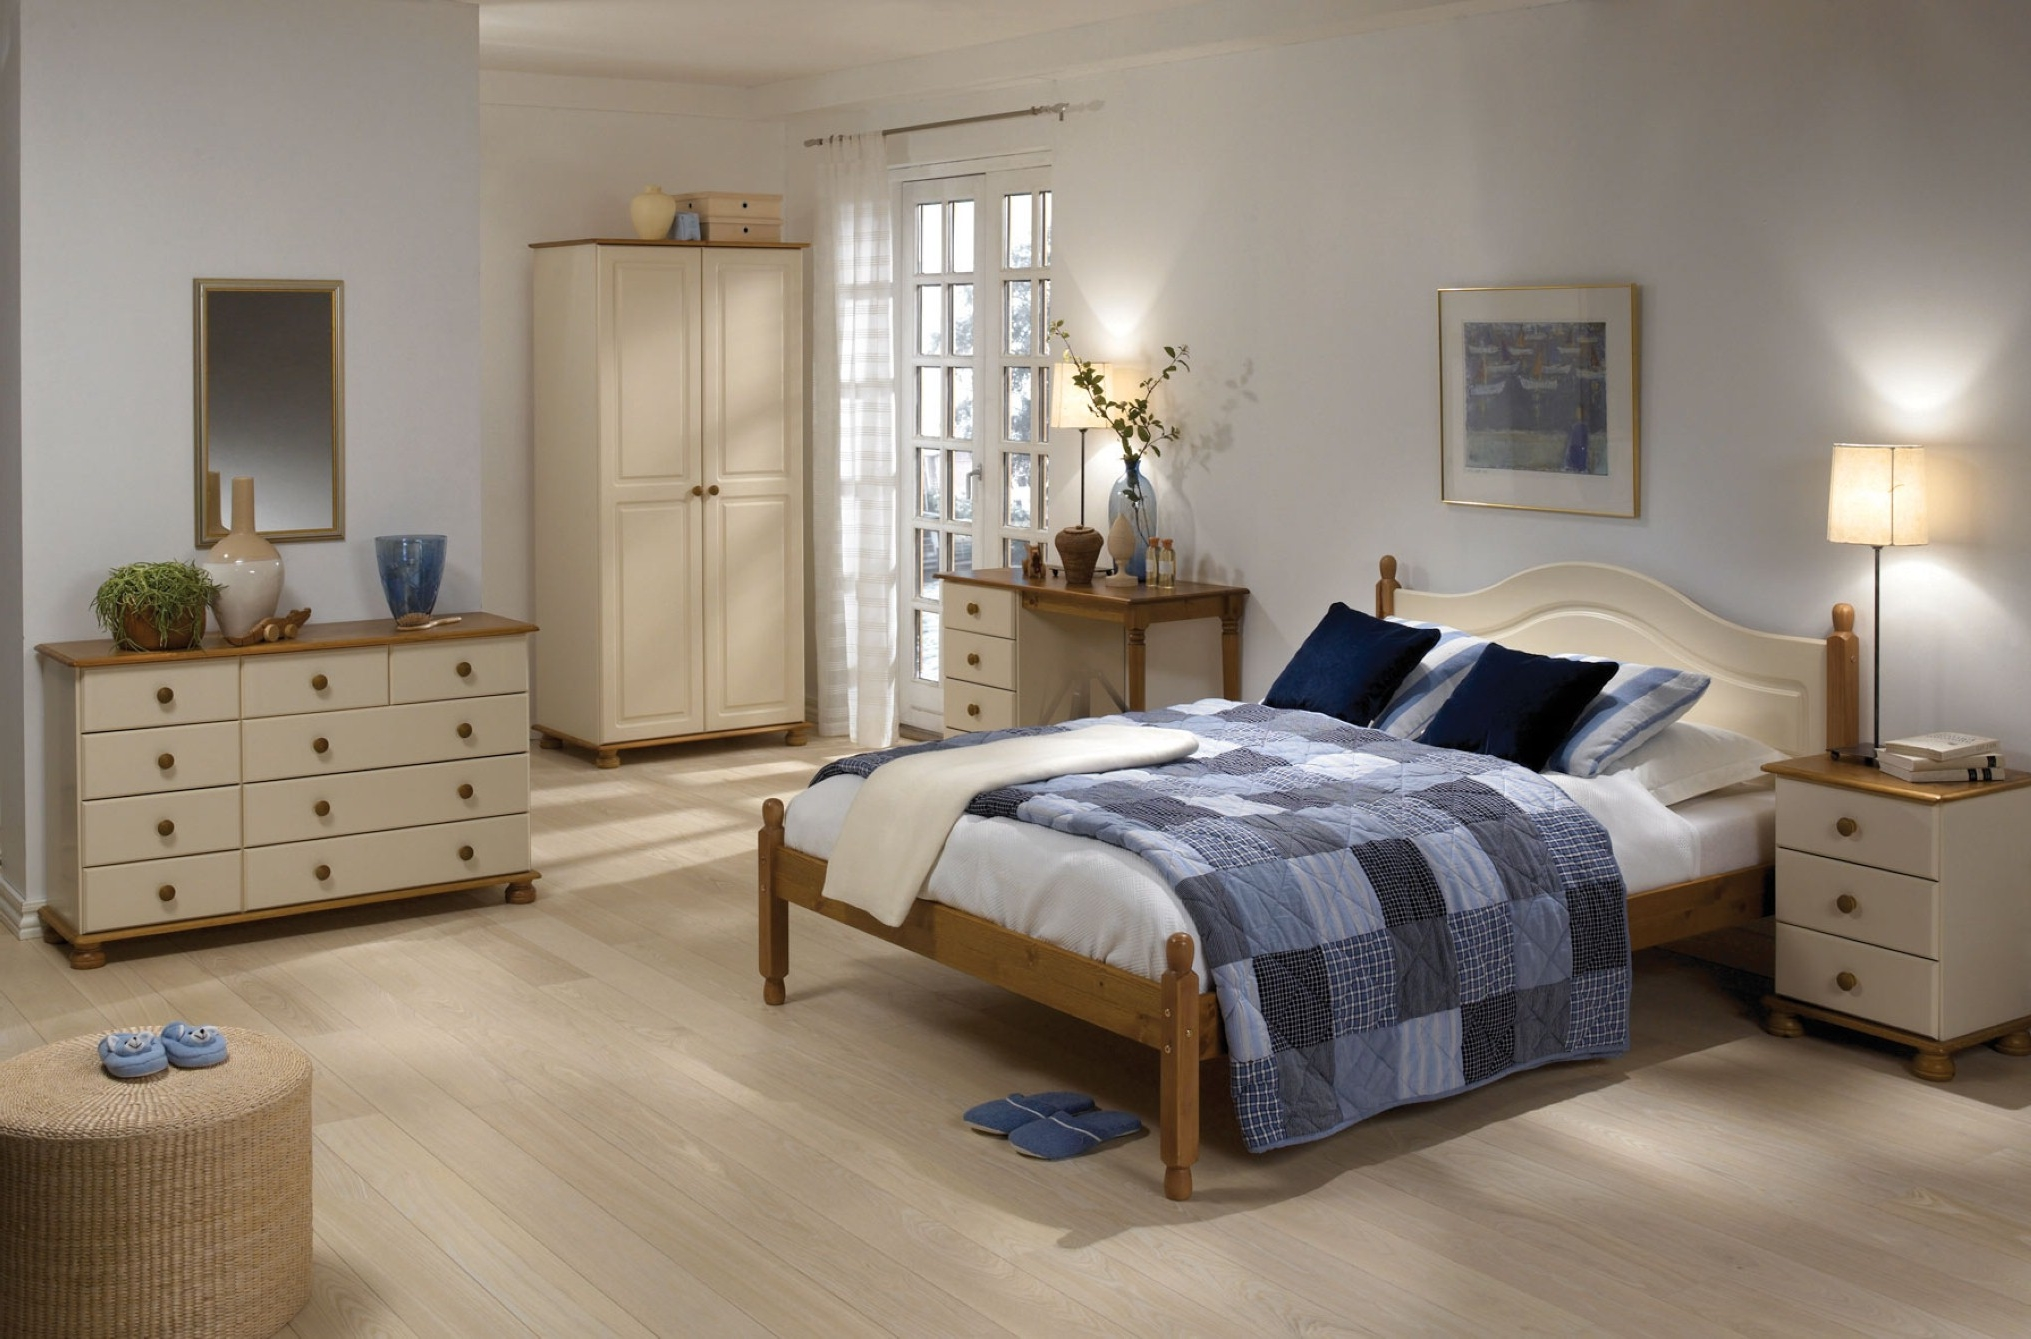 Neat Inspirational Cream Furniture As Modern Bedroom Furniture With Added Design Bedroom And Engaging To Various Settings Layout Of The Room Bedroom Engaging (View 4 of 21)